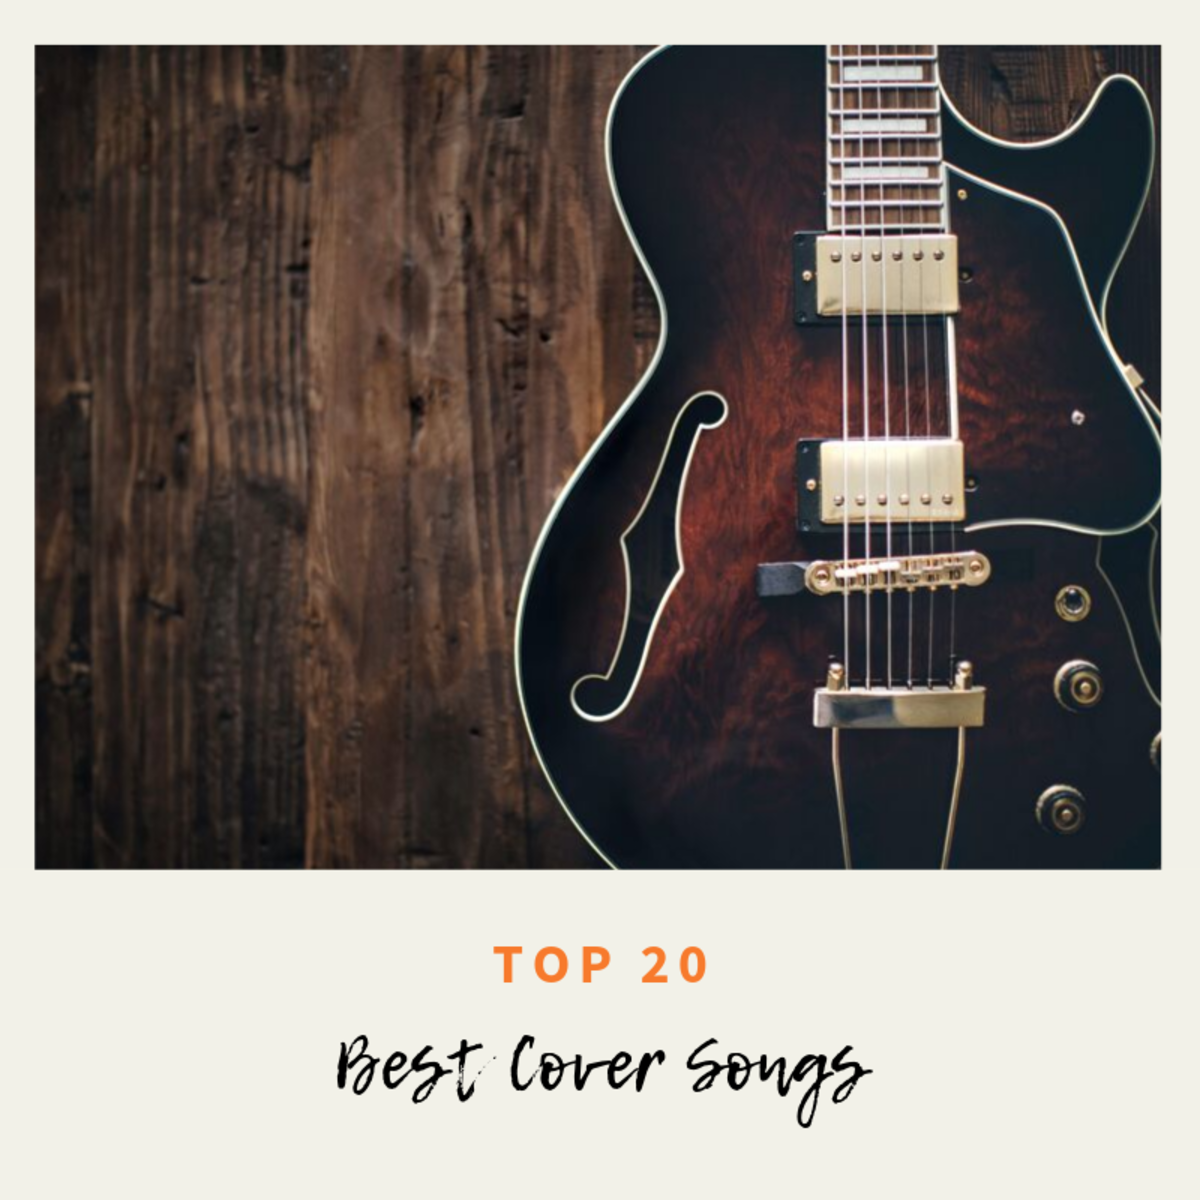 The Top 20 Best Cover Songs of All Time